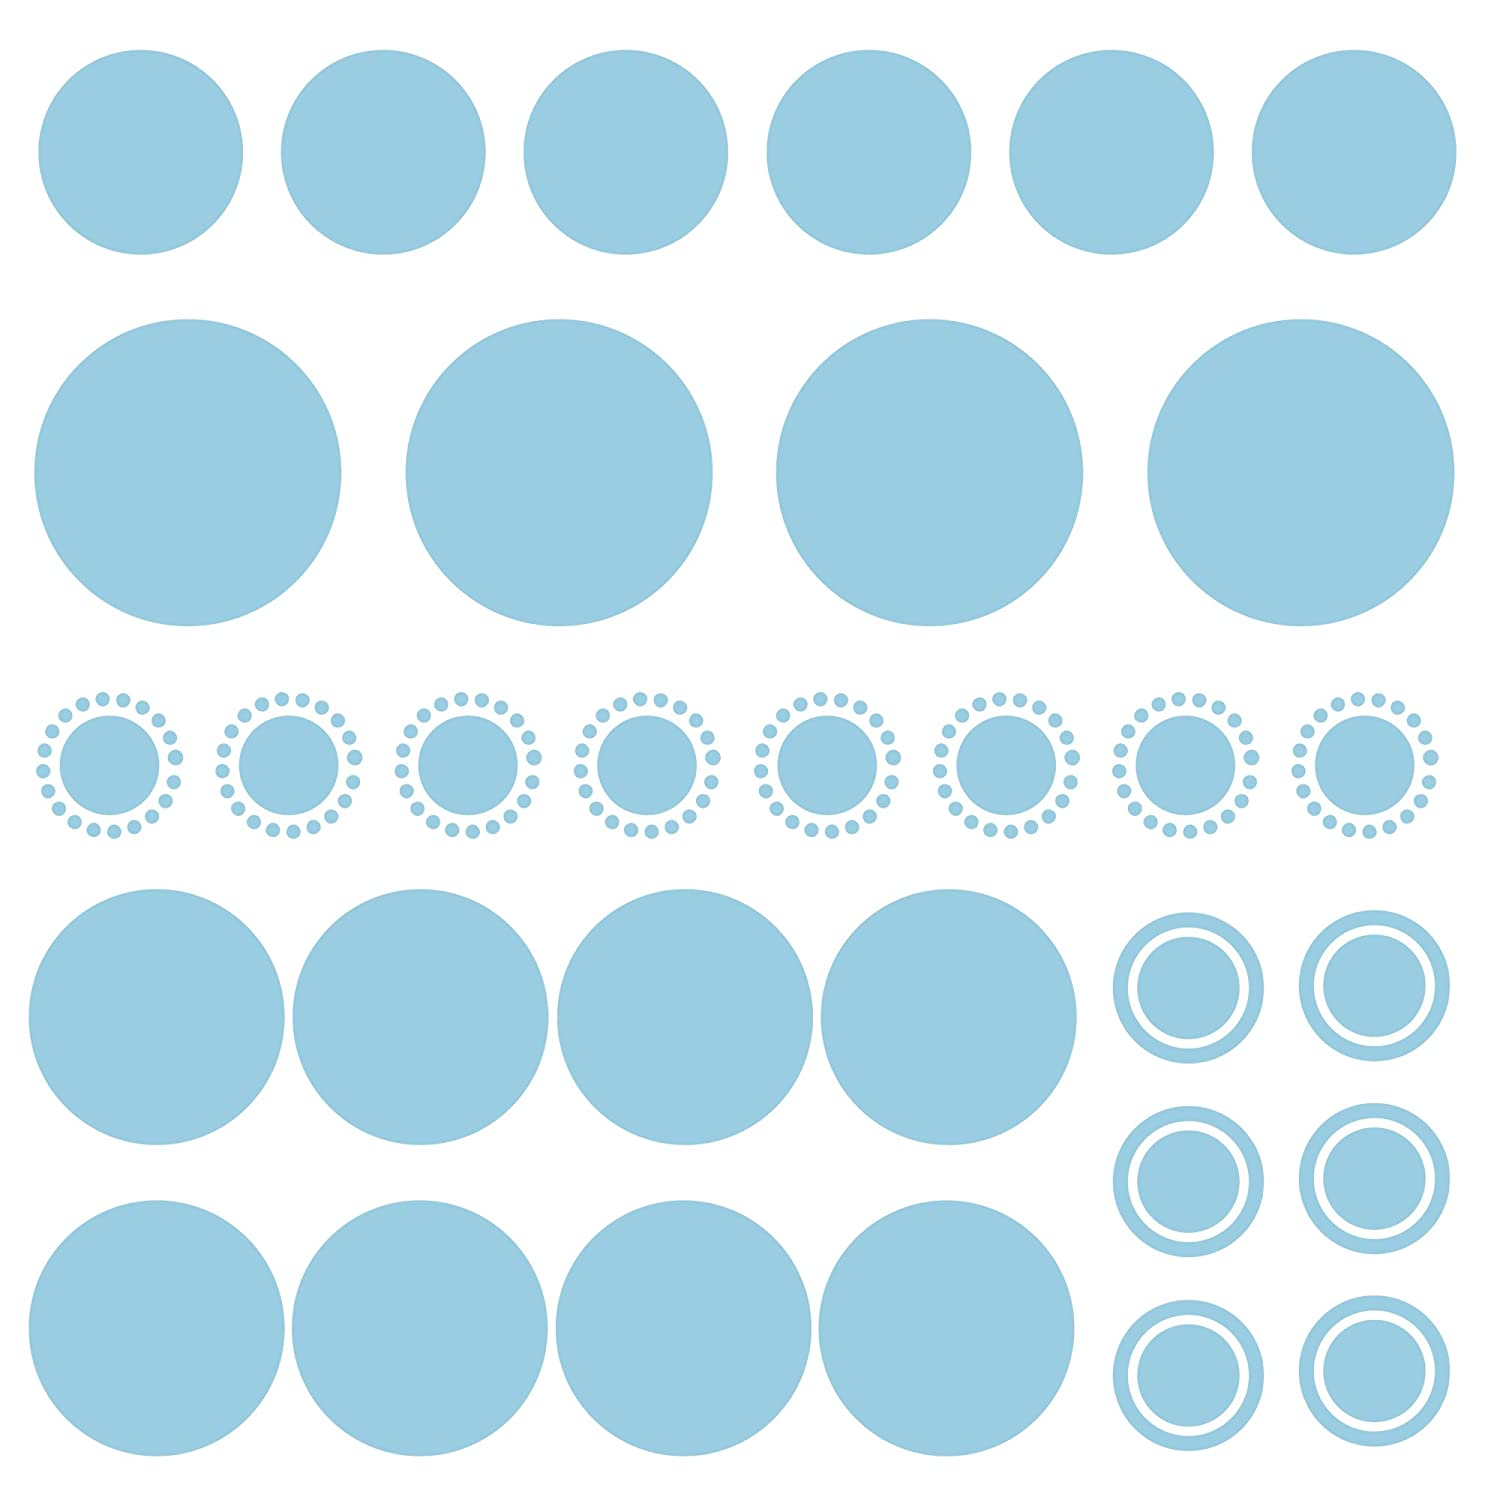 bobee polka dot wall decals peel and stick confetti wall stickers bobee polka dot wall decals peel and stick confetti wall stickers light blue baby products amazon com